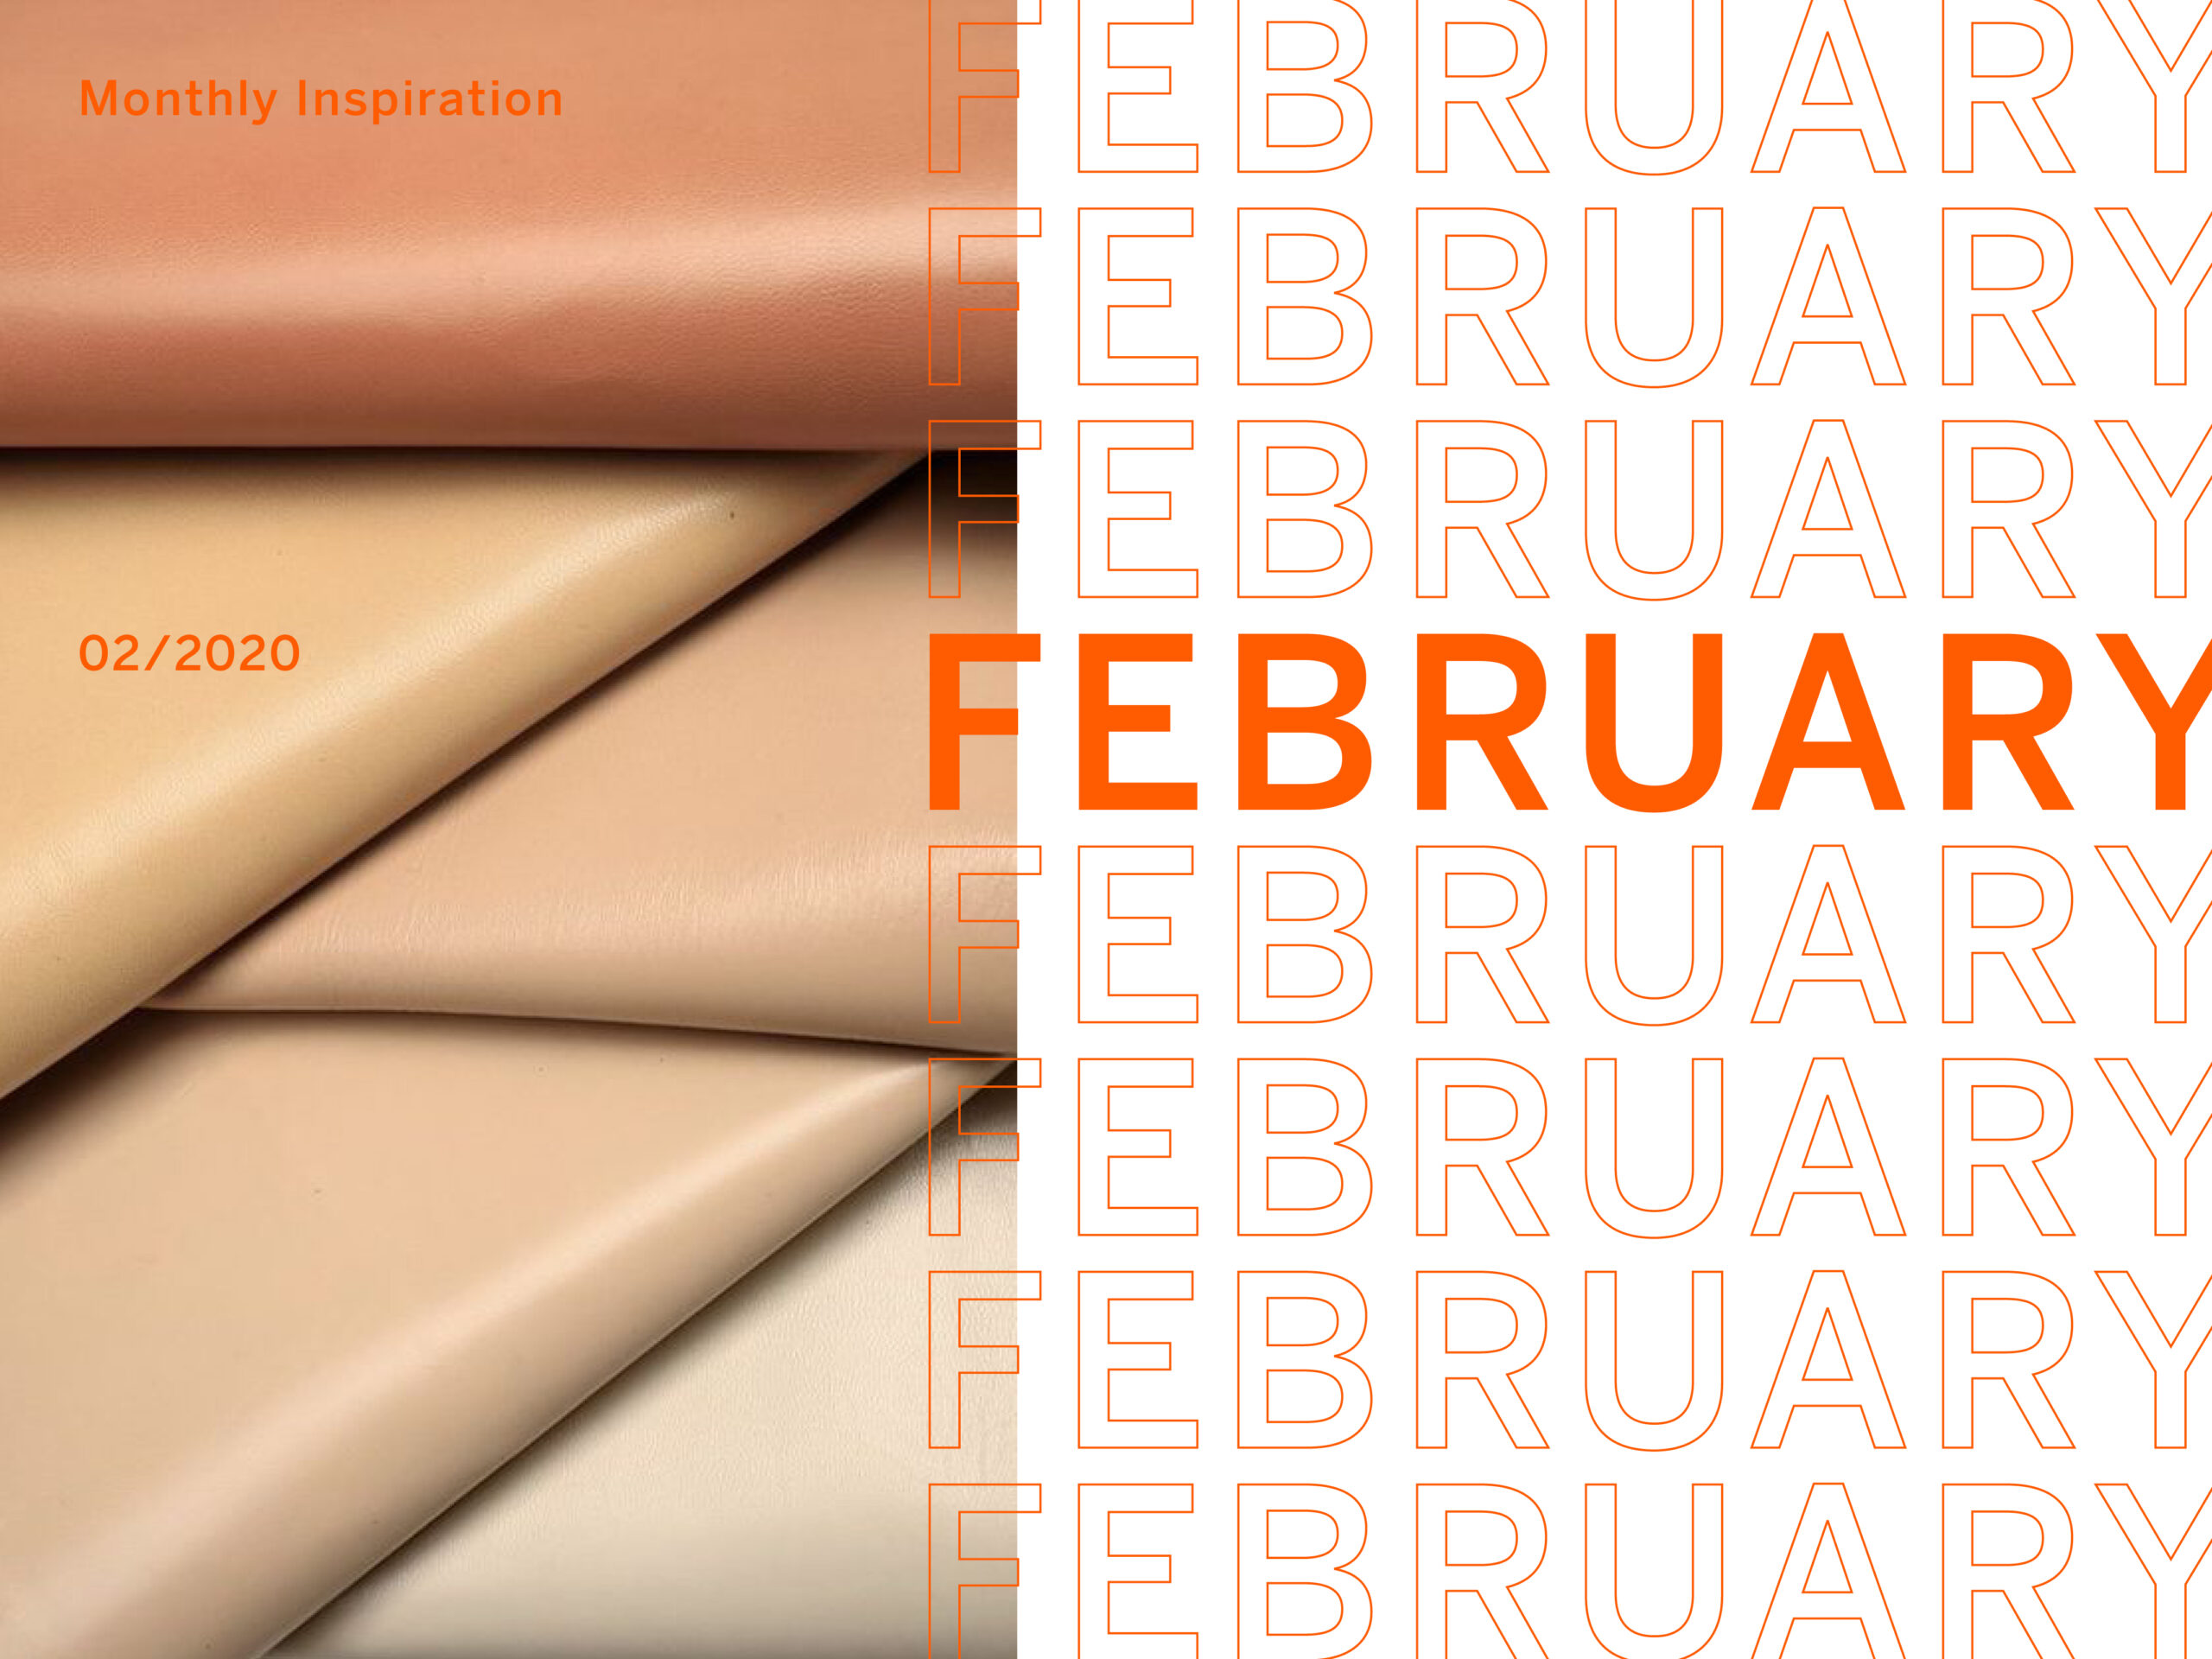 Monthly Inspiration: February